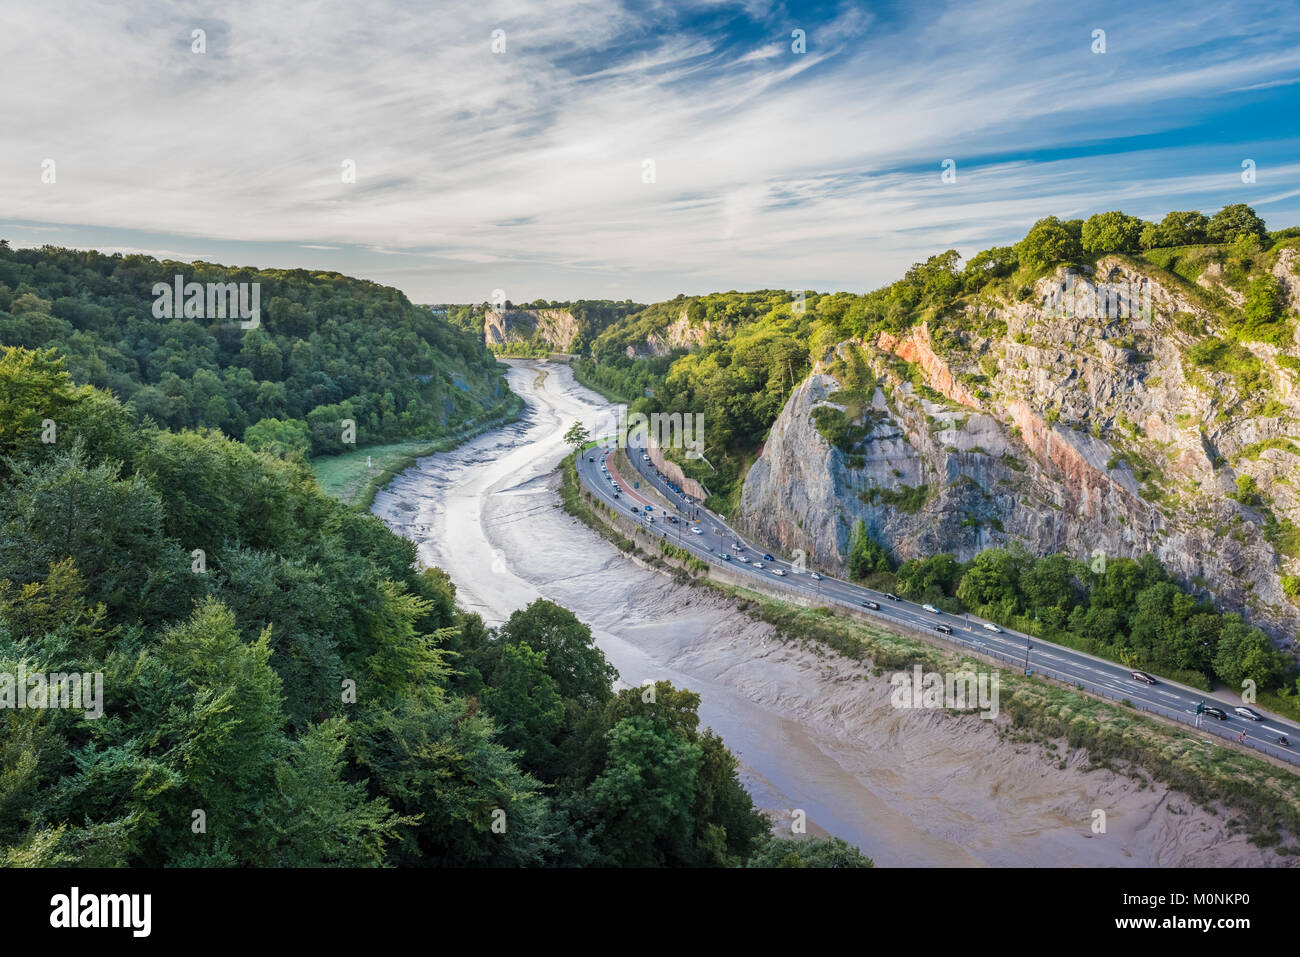 the-avon-gorge-with-the-river-avon-flowing-in-the-centre-of-its-highly-M0NKP0.jpg